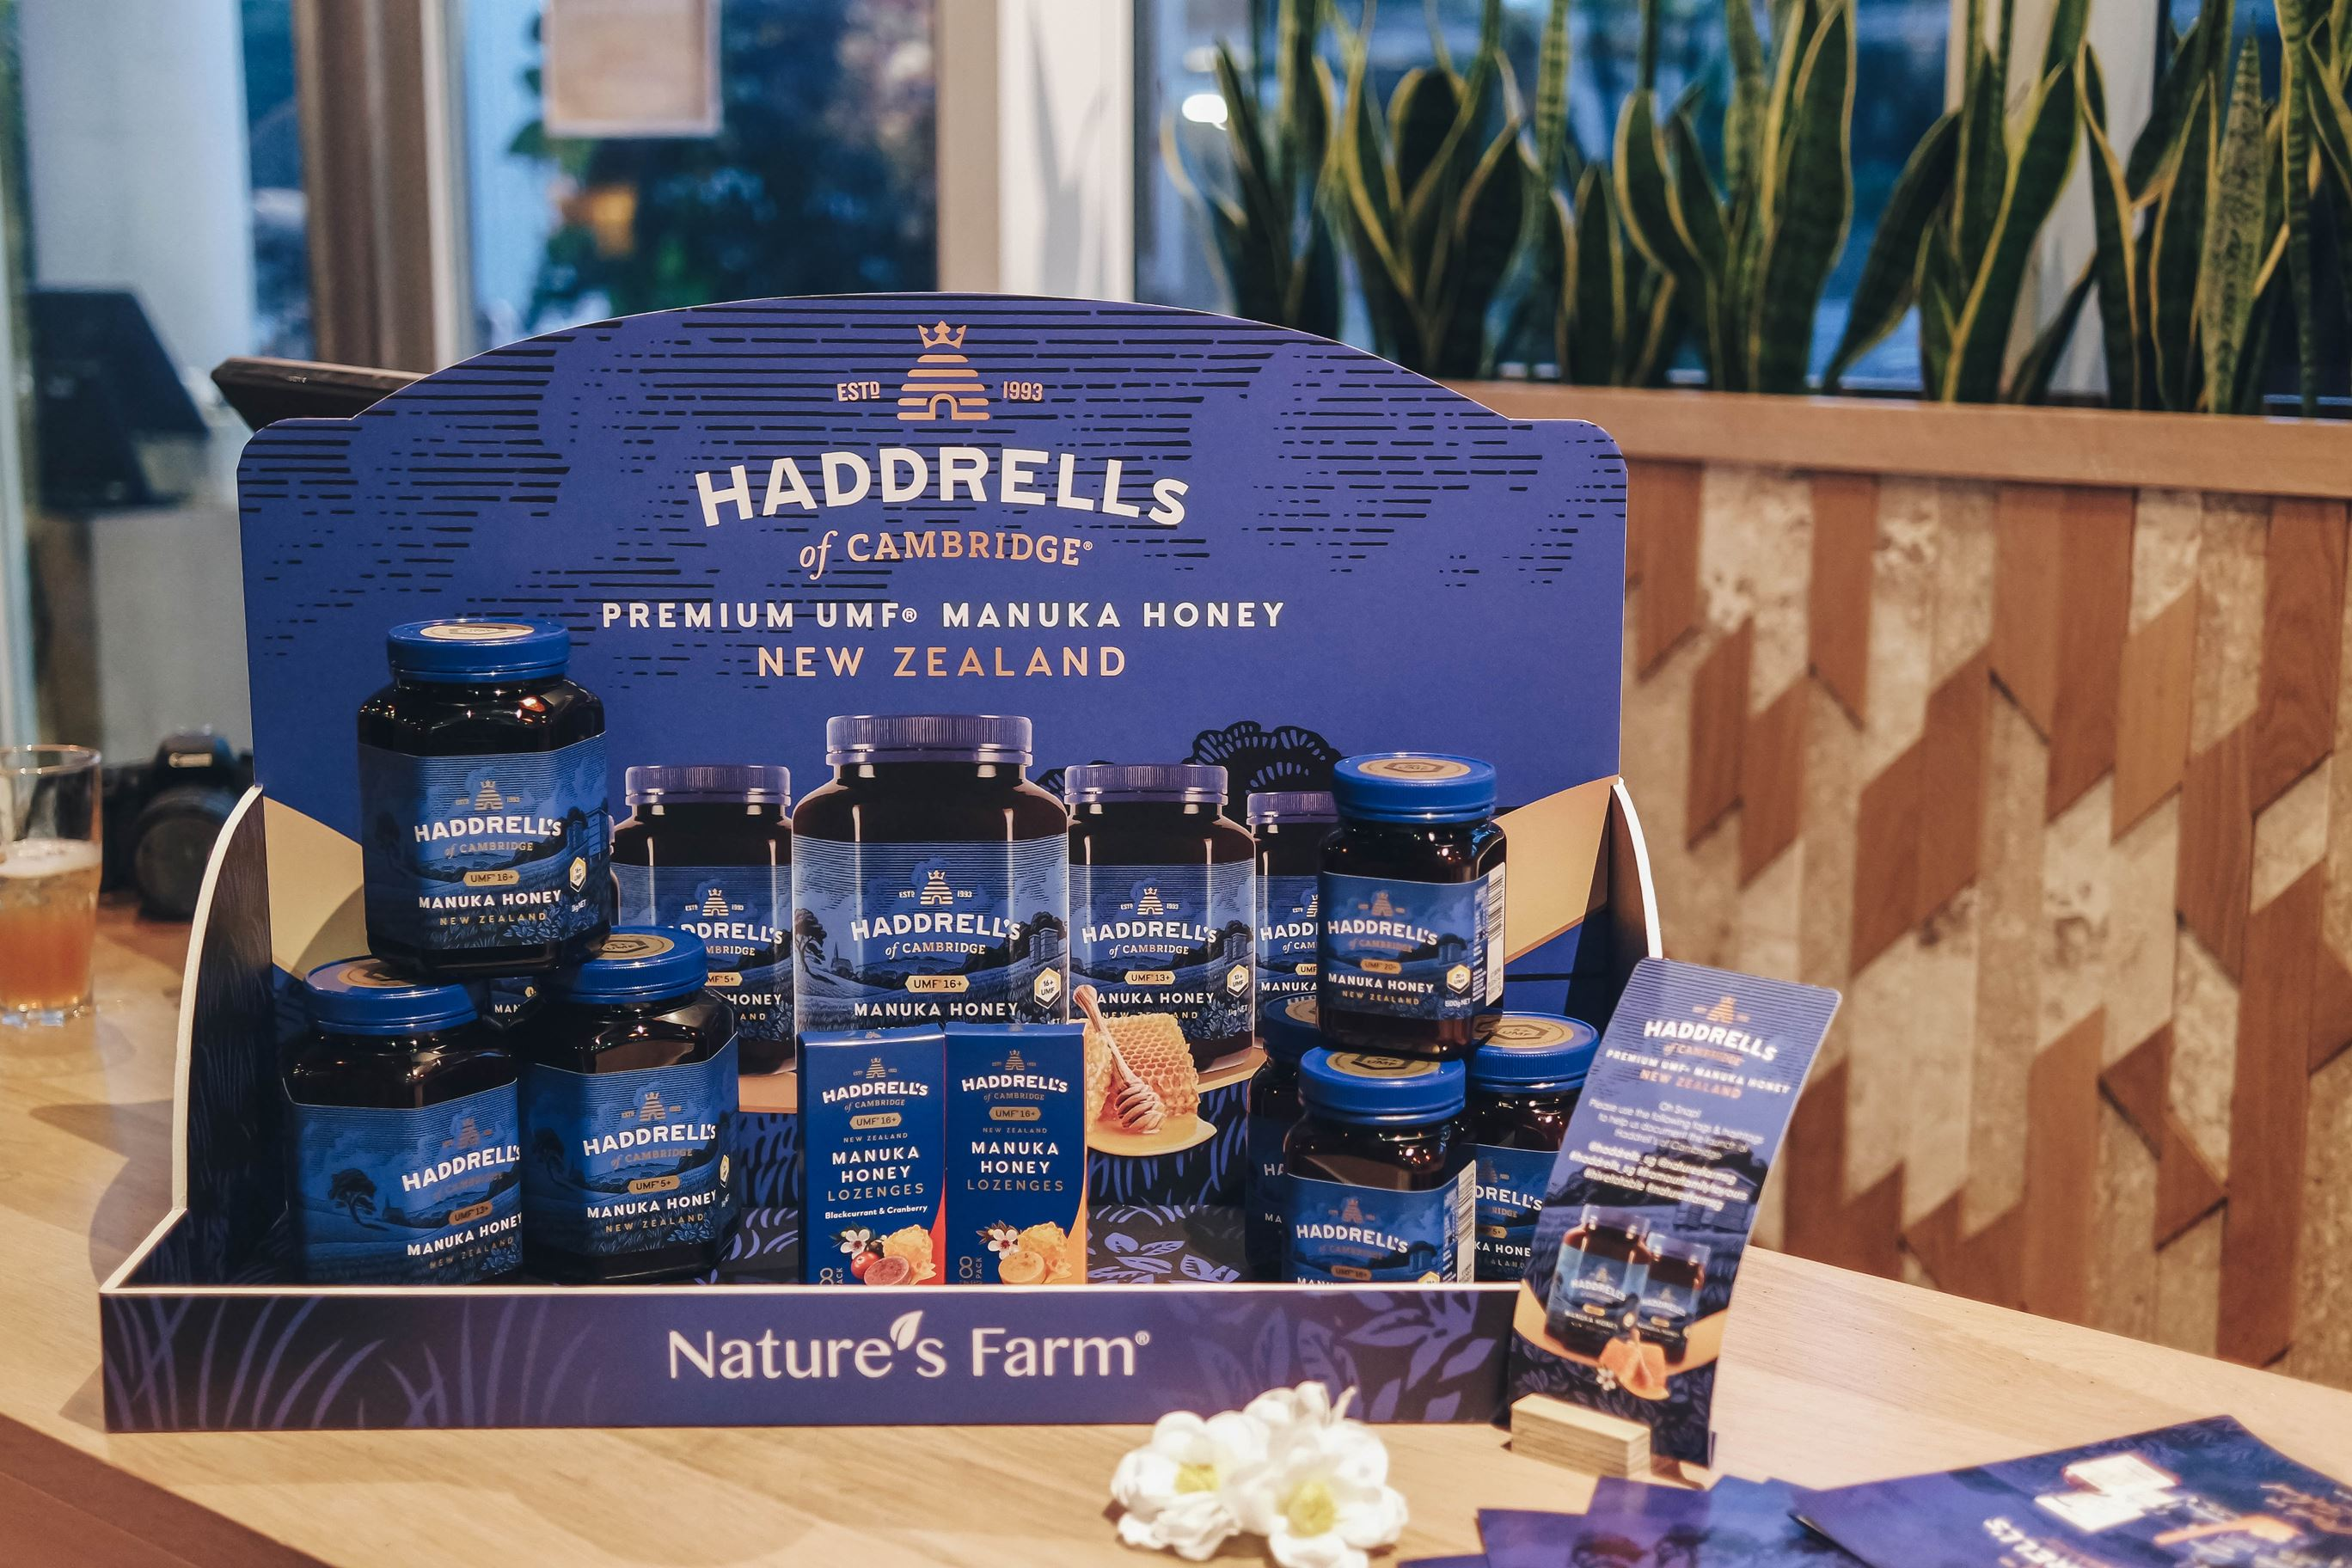 Haddrell's Manuka Honey